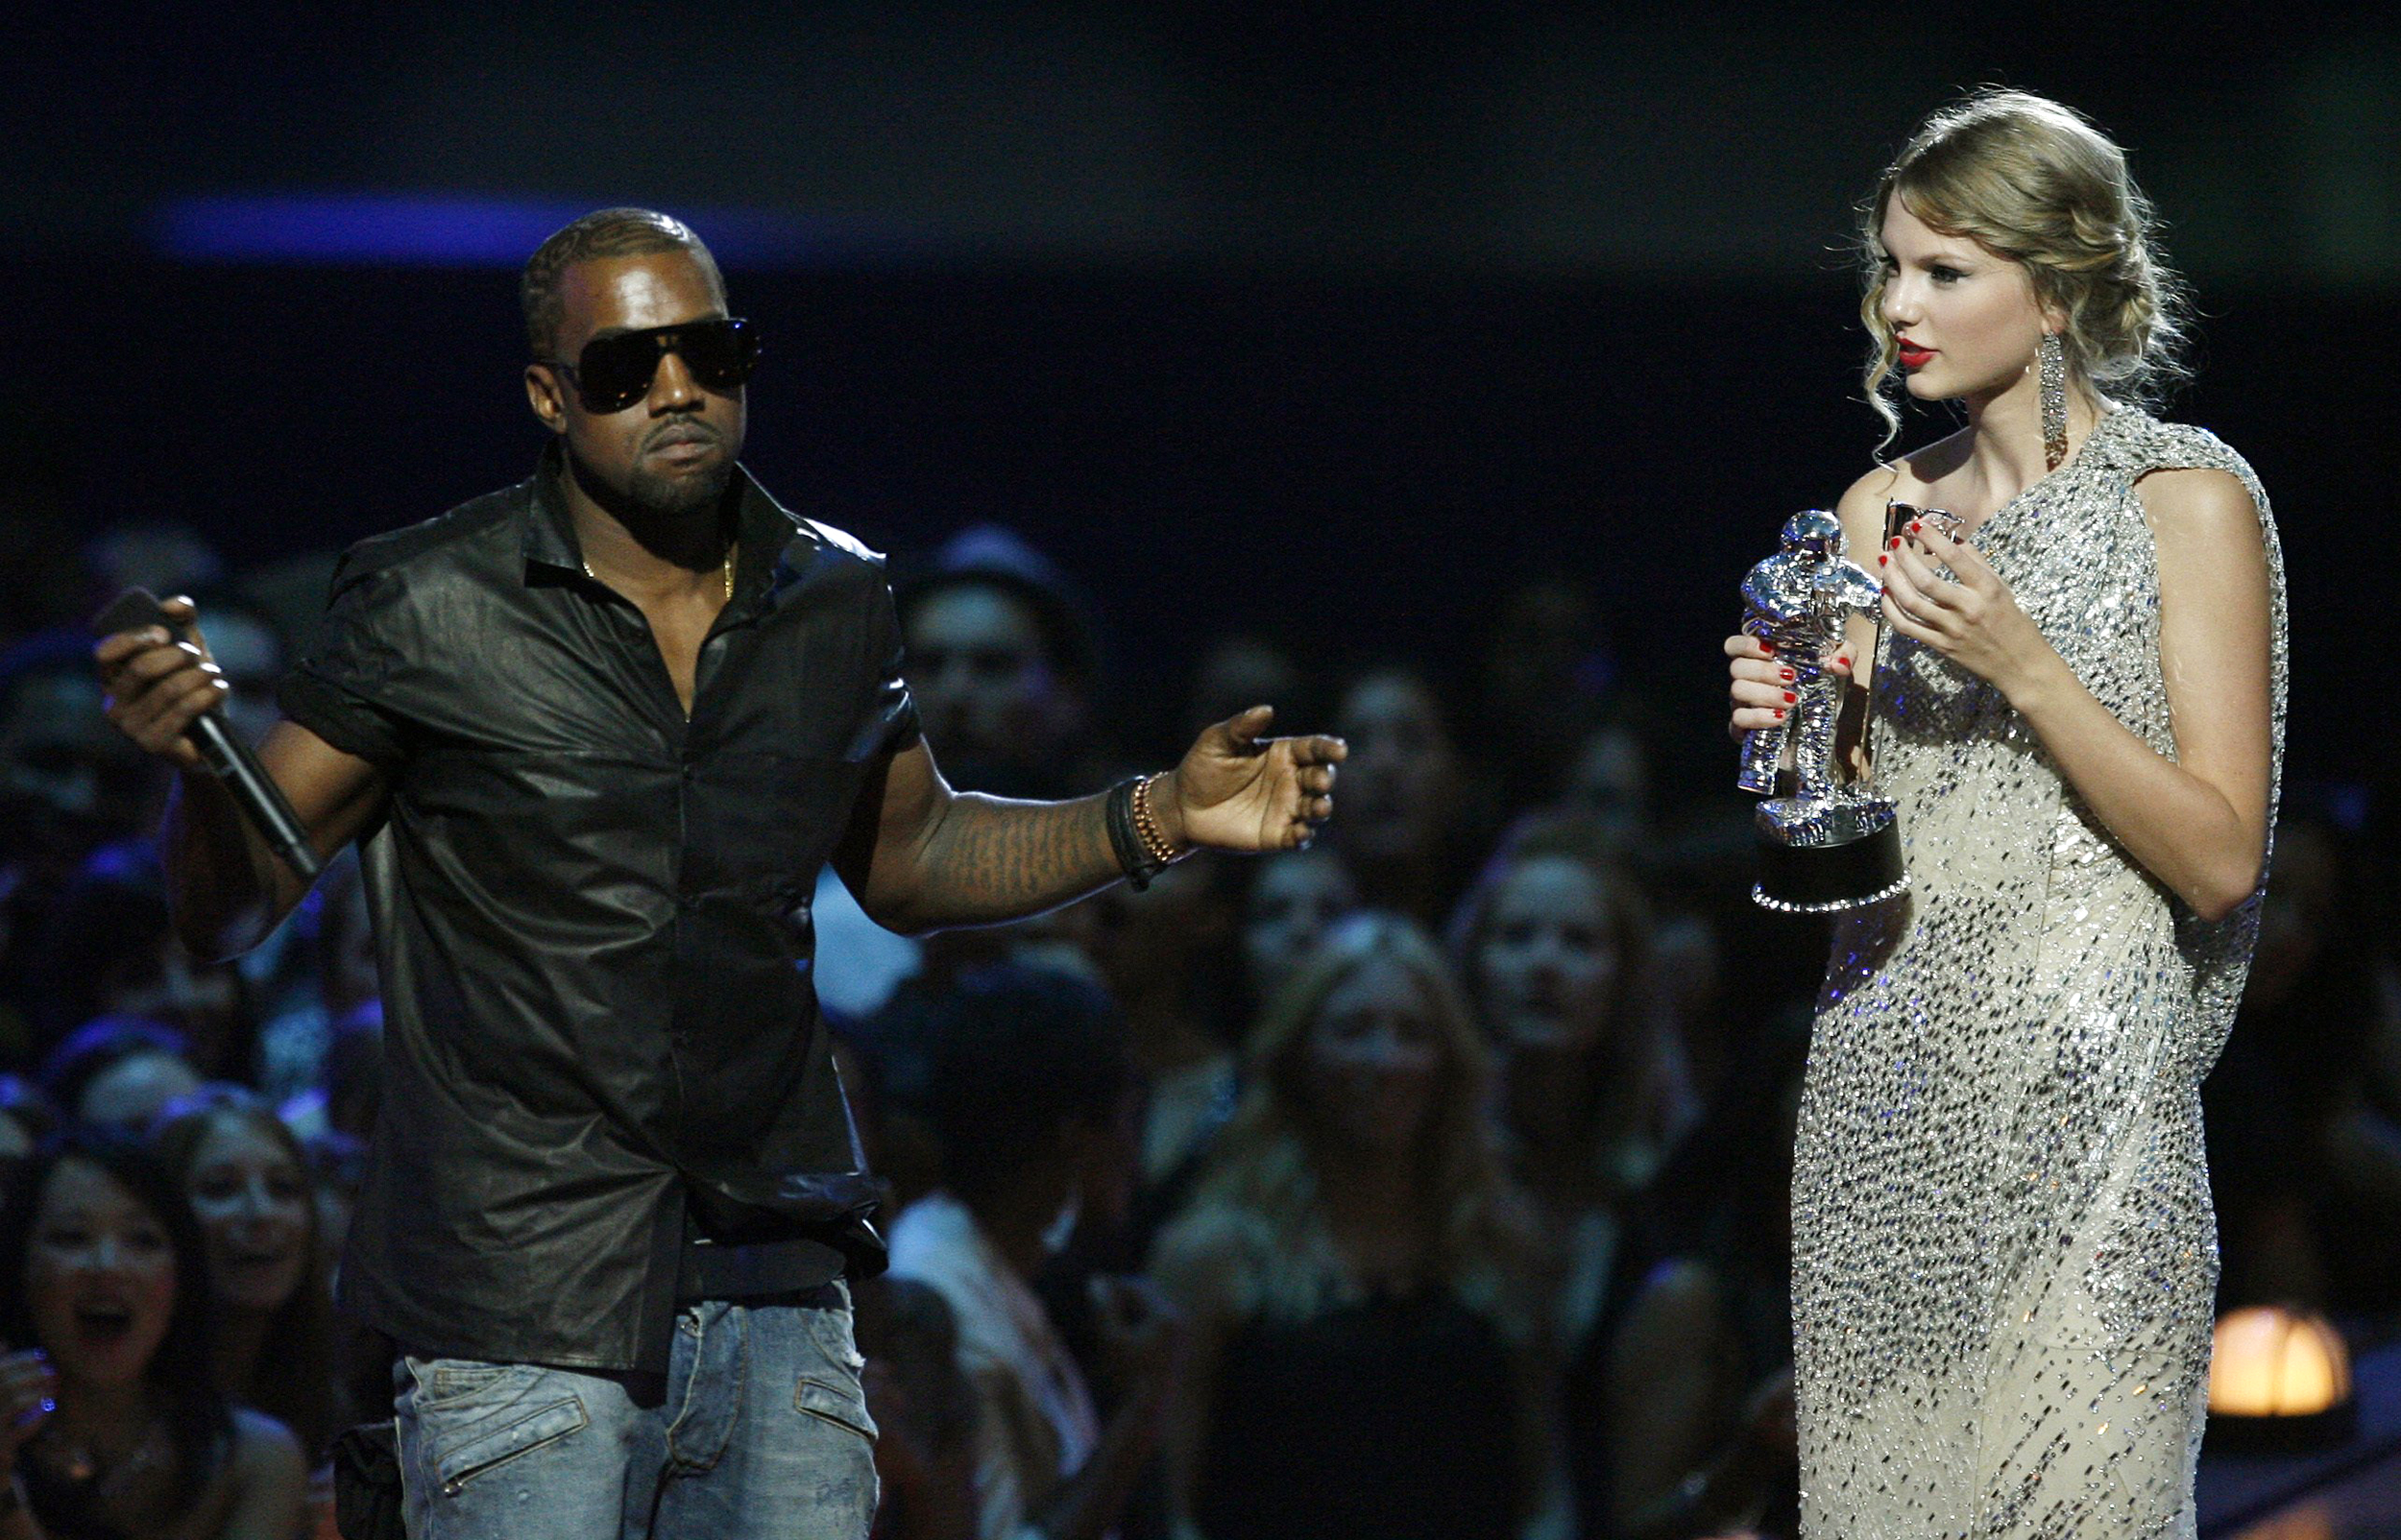 Taylor Swift Uses Leaked Kanye West Video To Raise Money For Charity Coronavirus Efforts